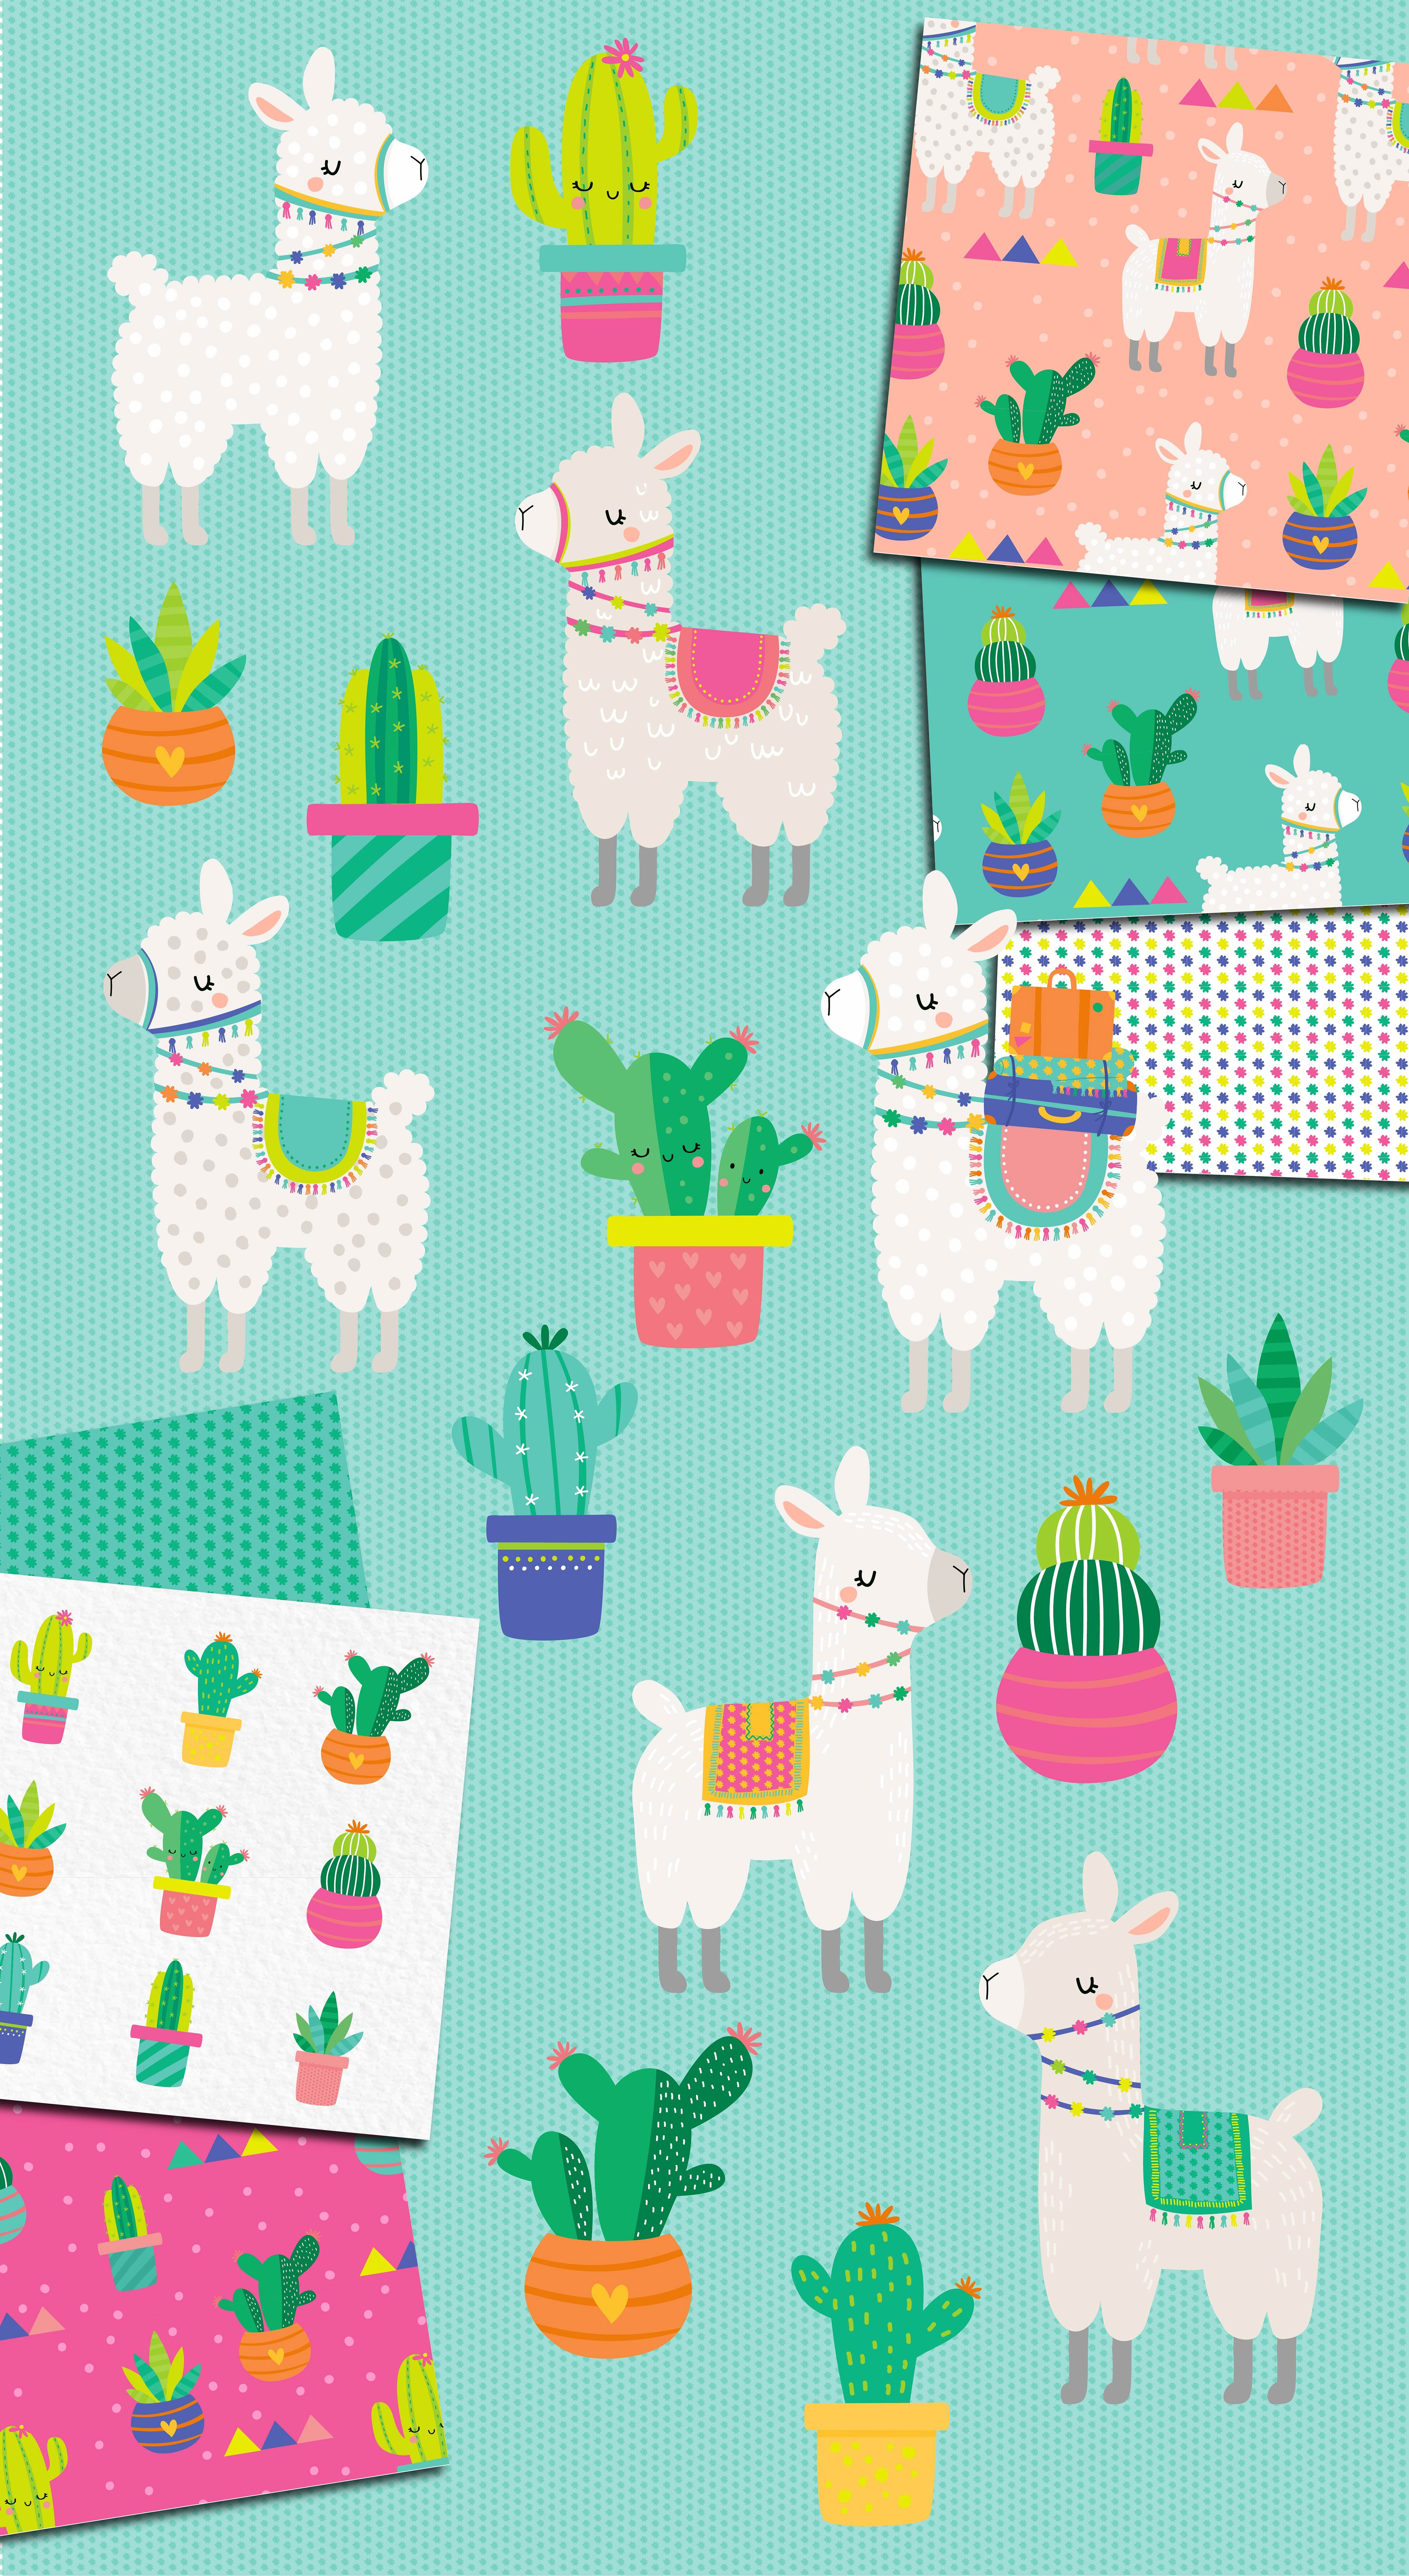 Cute Llama Amp Cactus Clipart Illustrations By Dillypeach